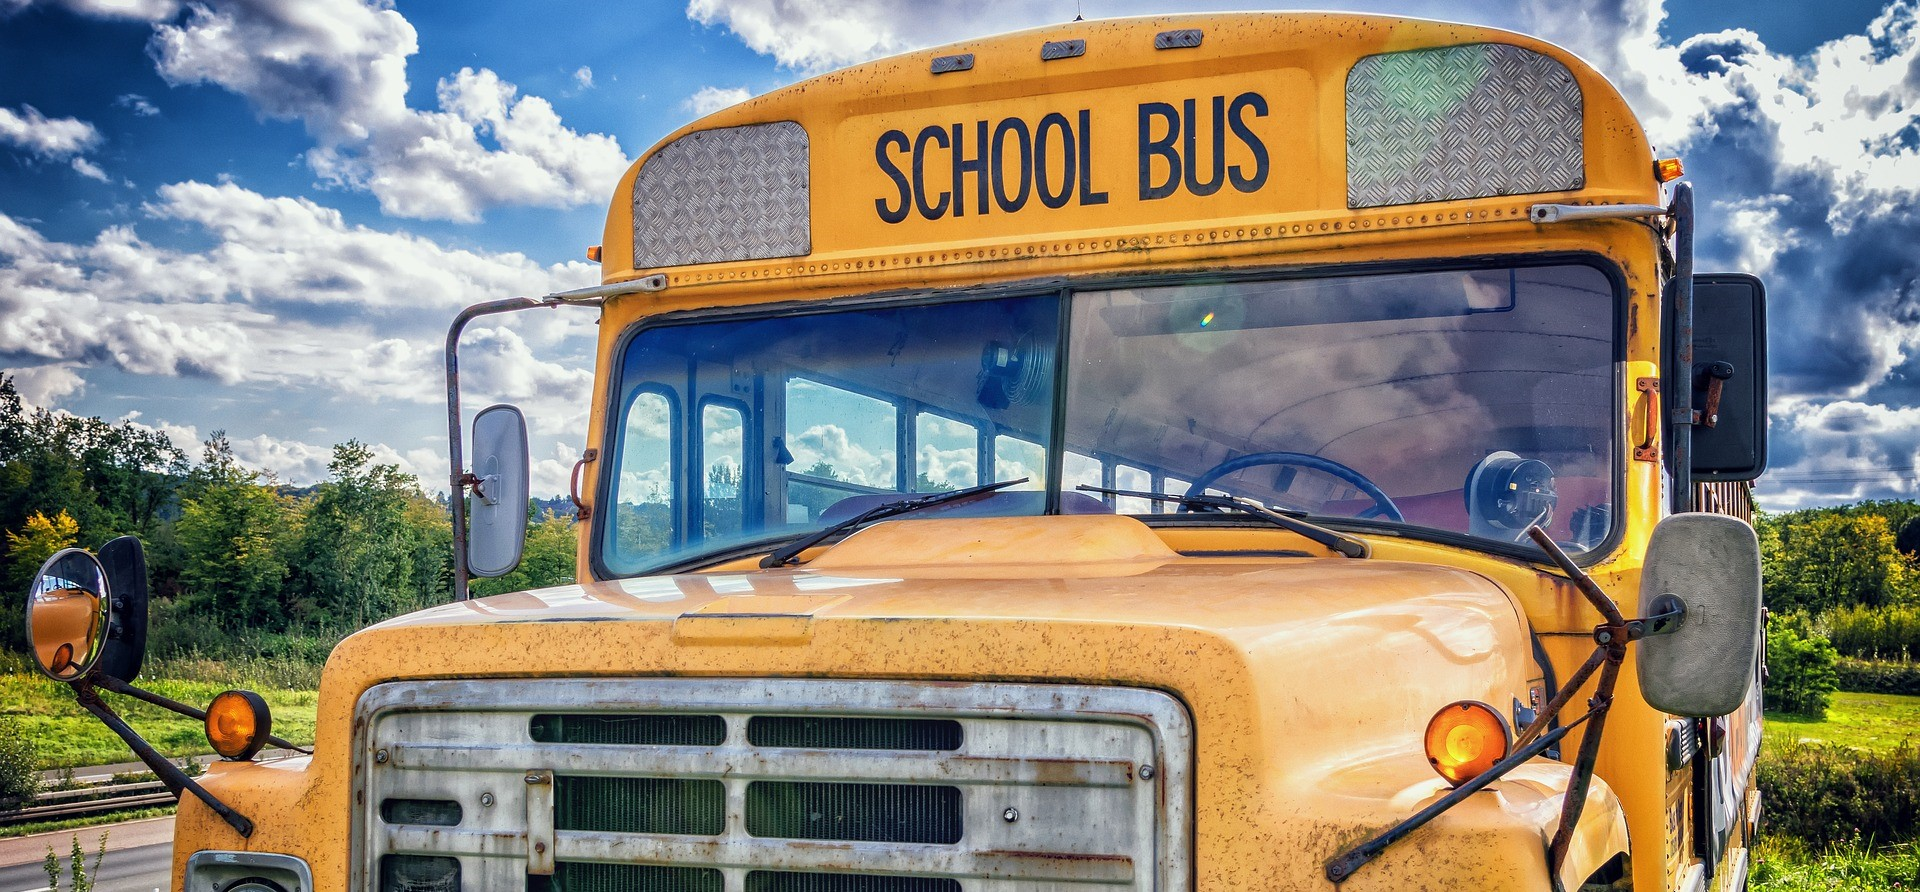 Old School Bus in Palm Beach, Florida | Breast Cancer Car Donations